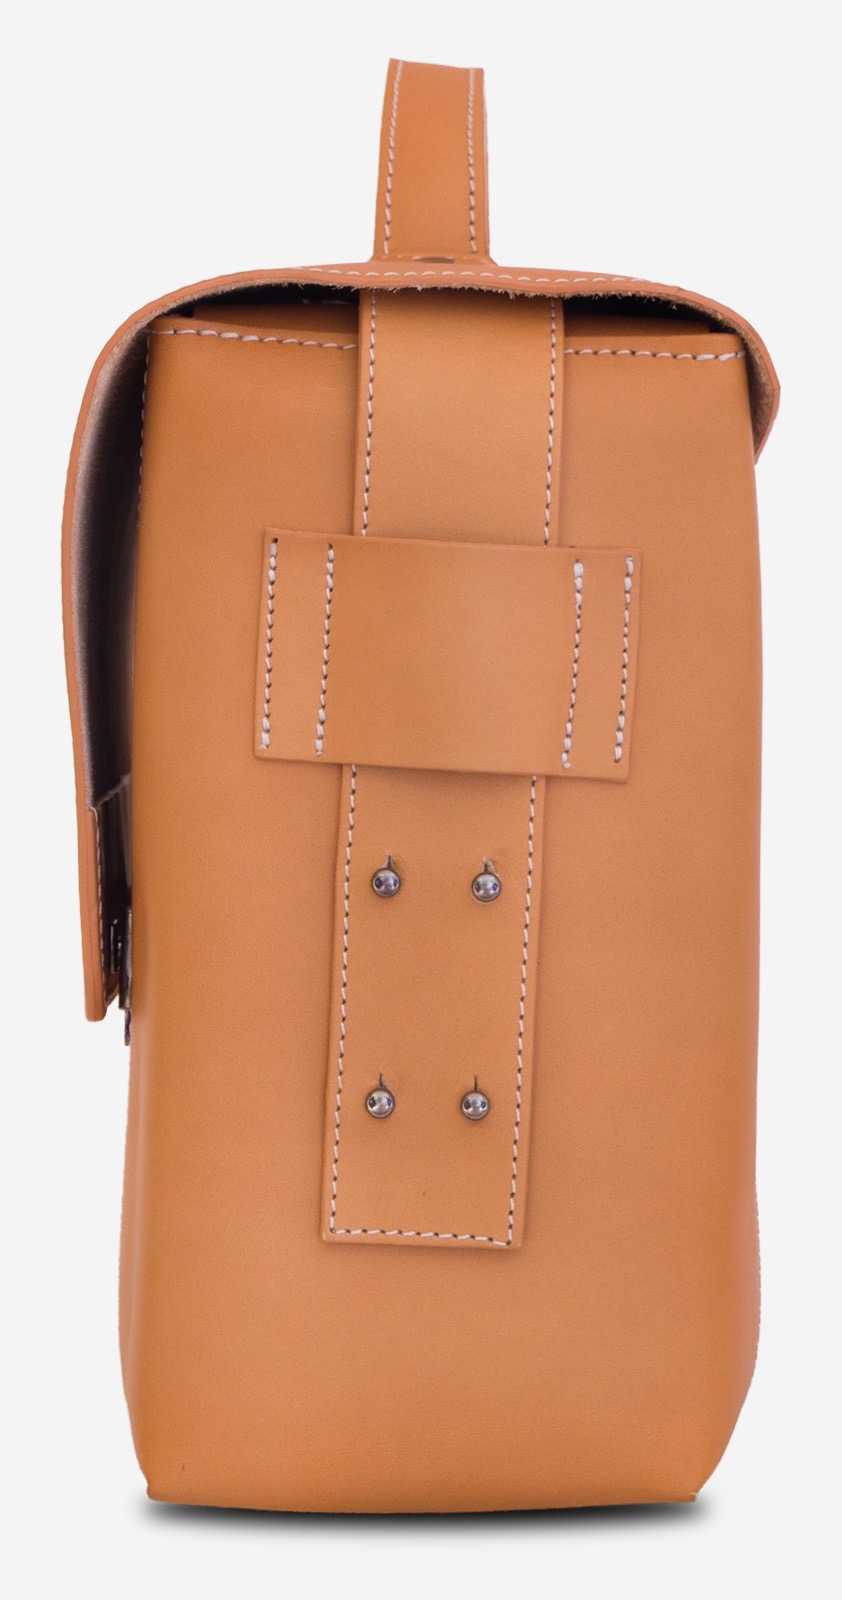 Side view of the large vegetable tanned leather briefcase bag with laptop pocket - 102178.